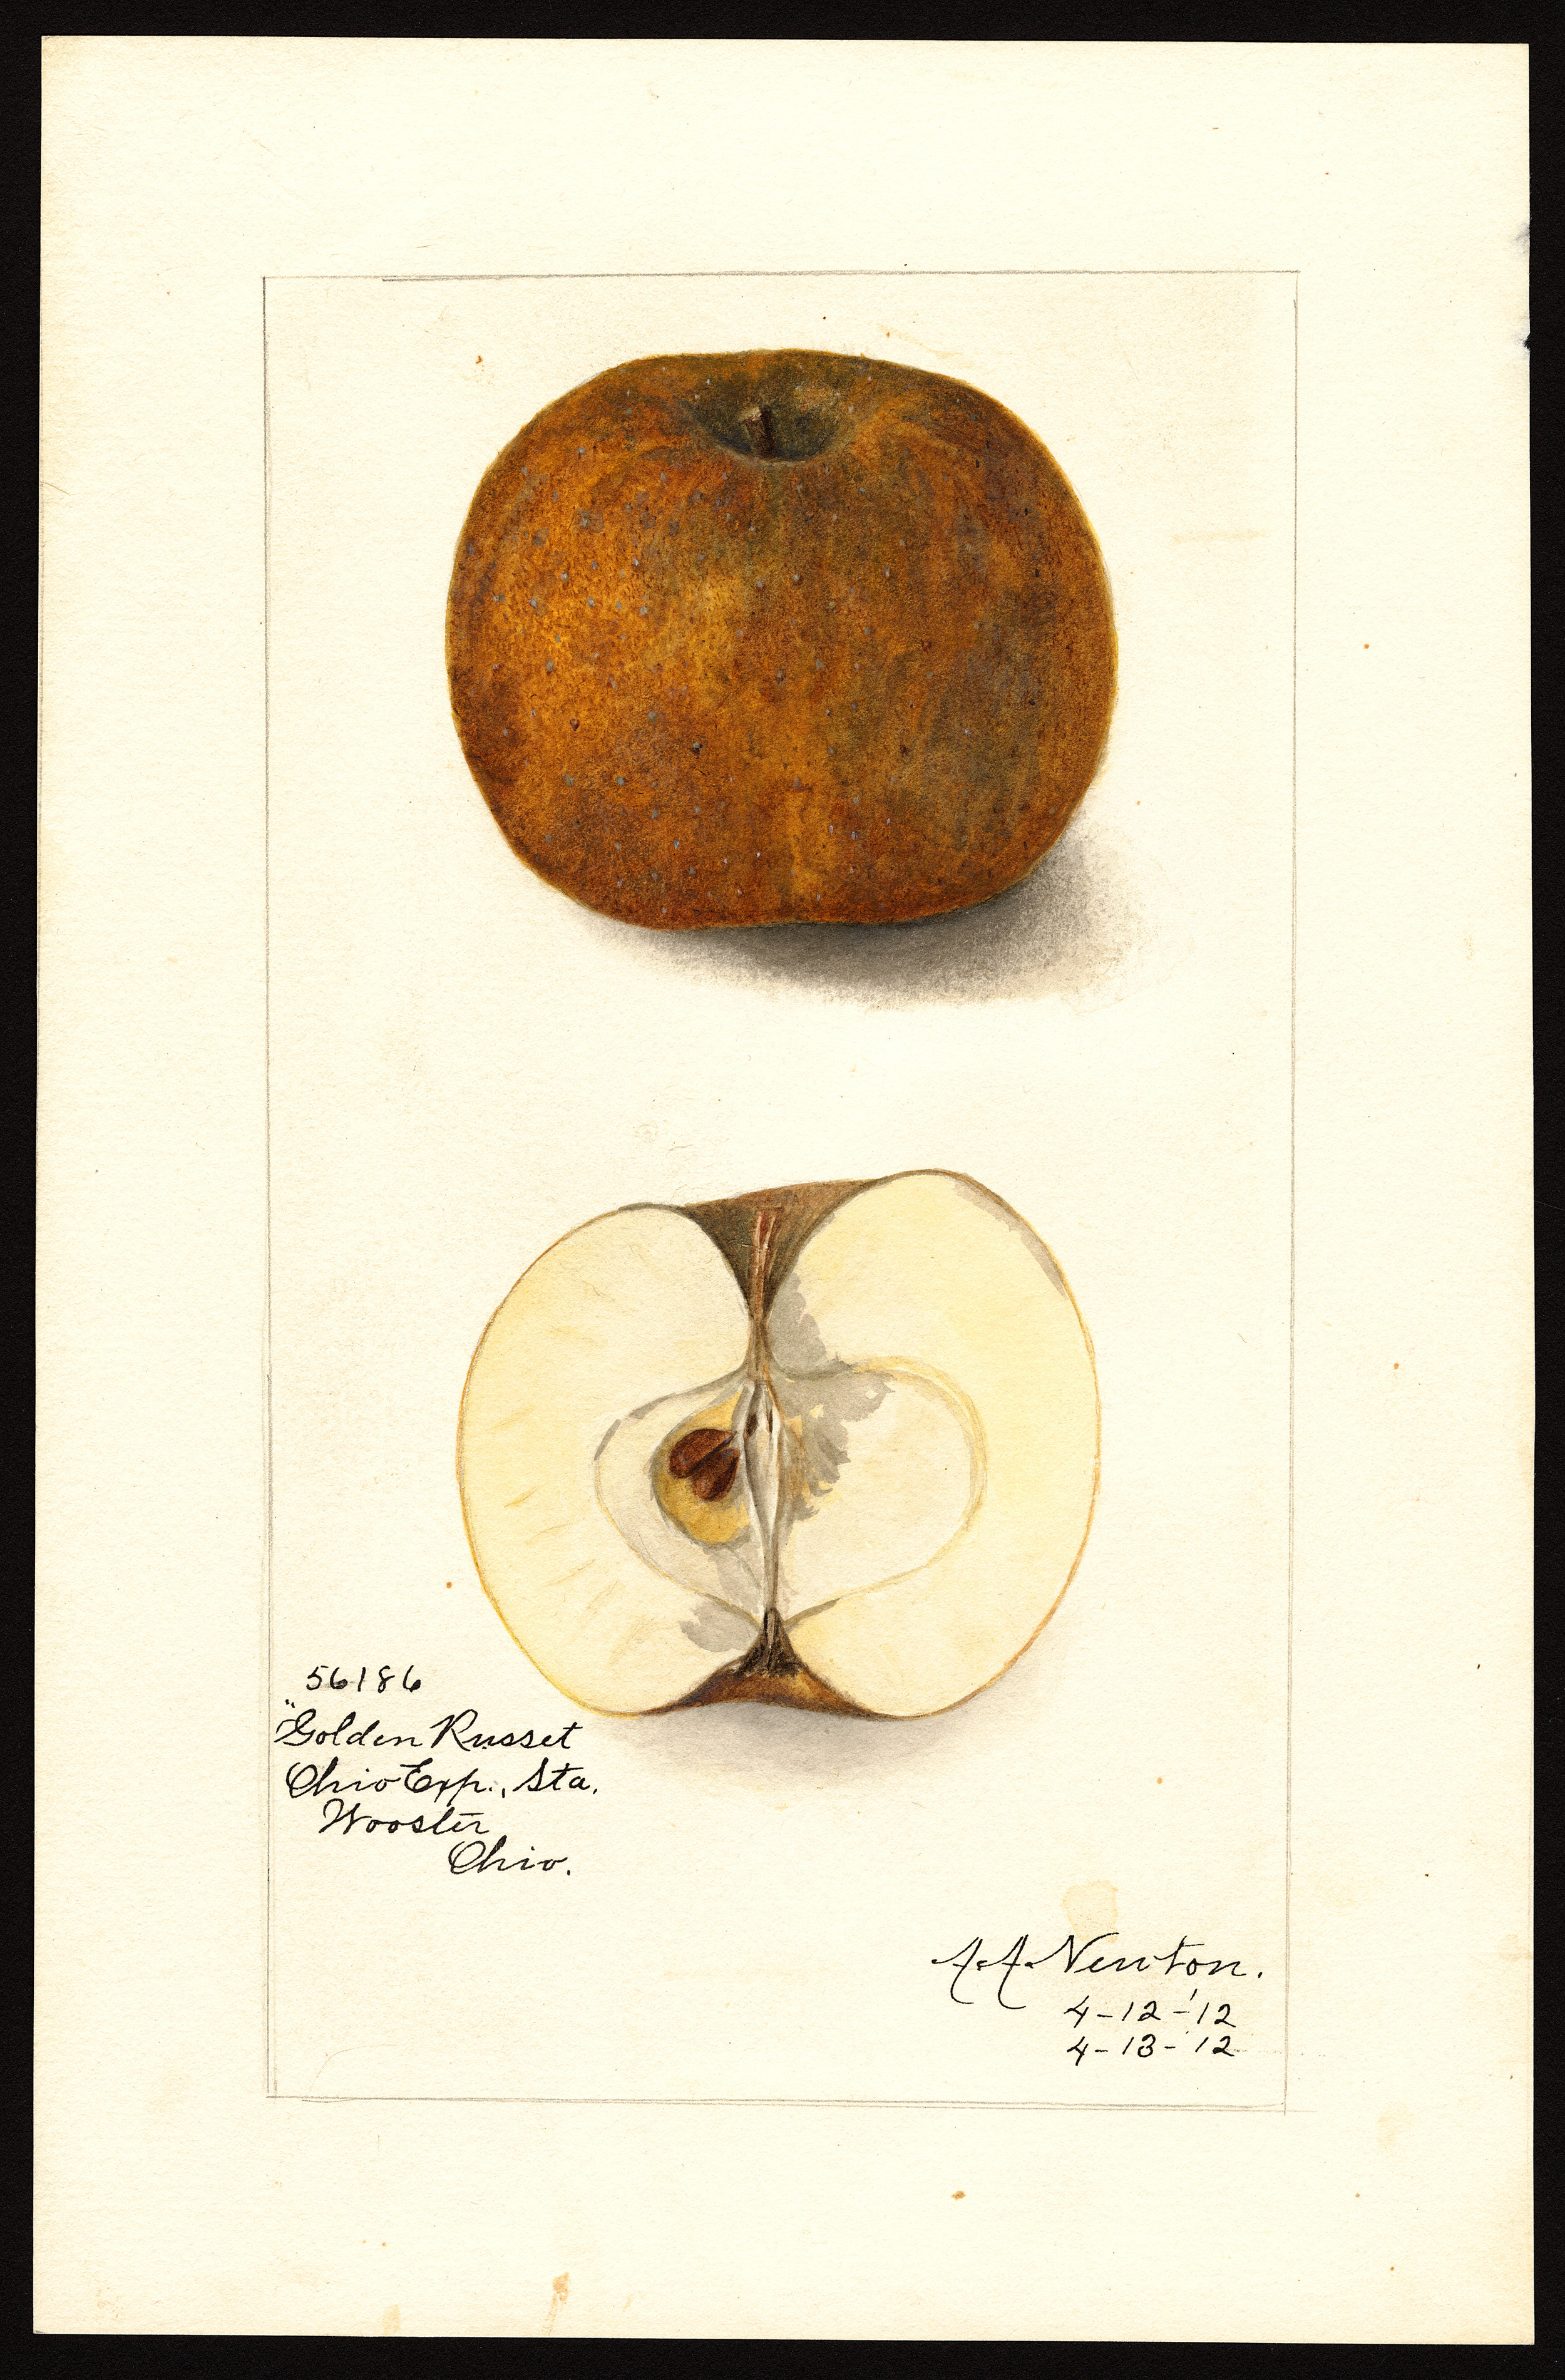 The Golden Russet apple, as depicted in a drawing from the U.S. Department of Agriculture (USDA) Pomological Watercolor Collection.